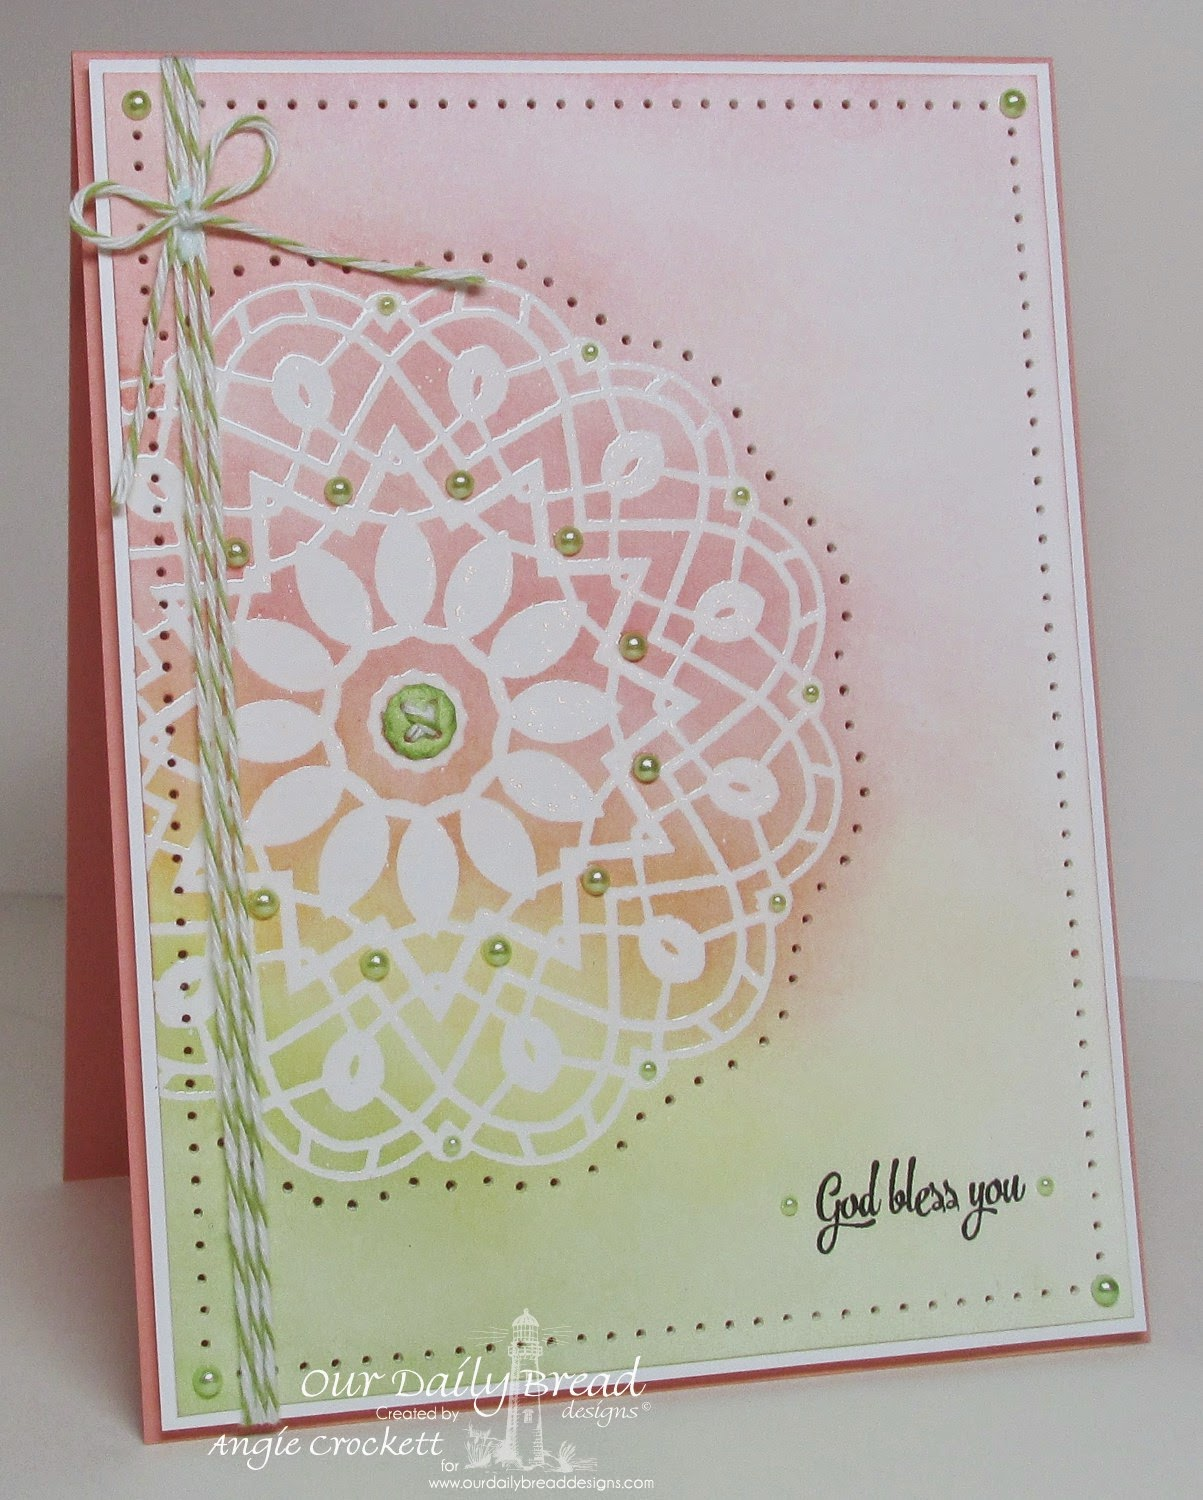 ODBD Doily Blessings, Card Designer Angie Crockett